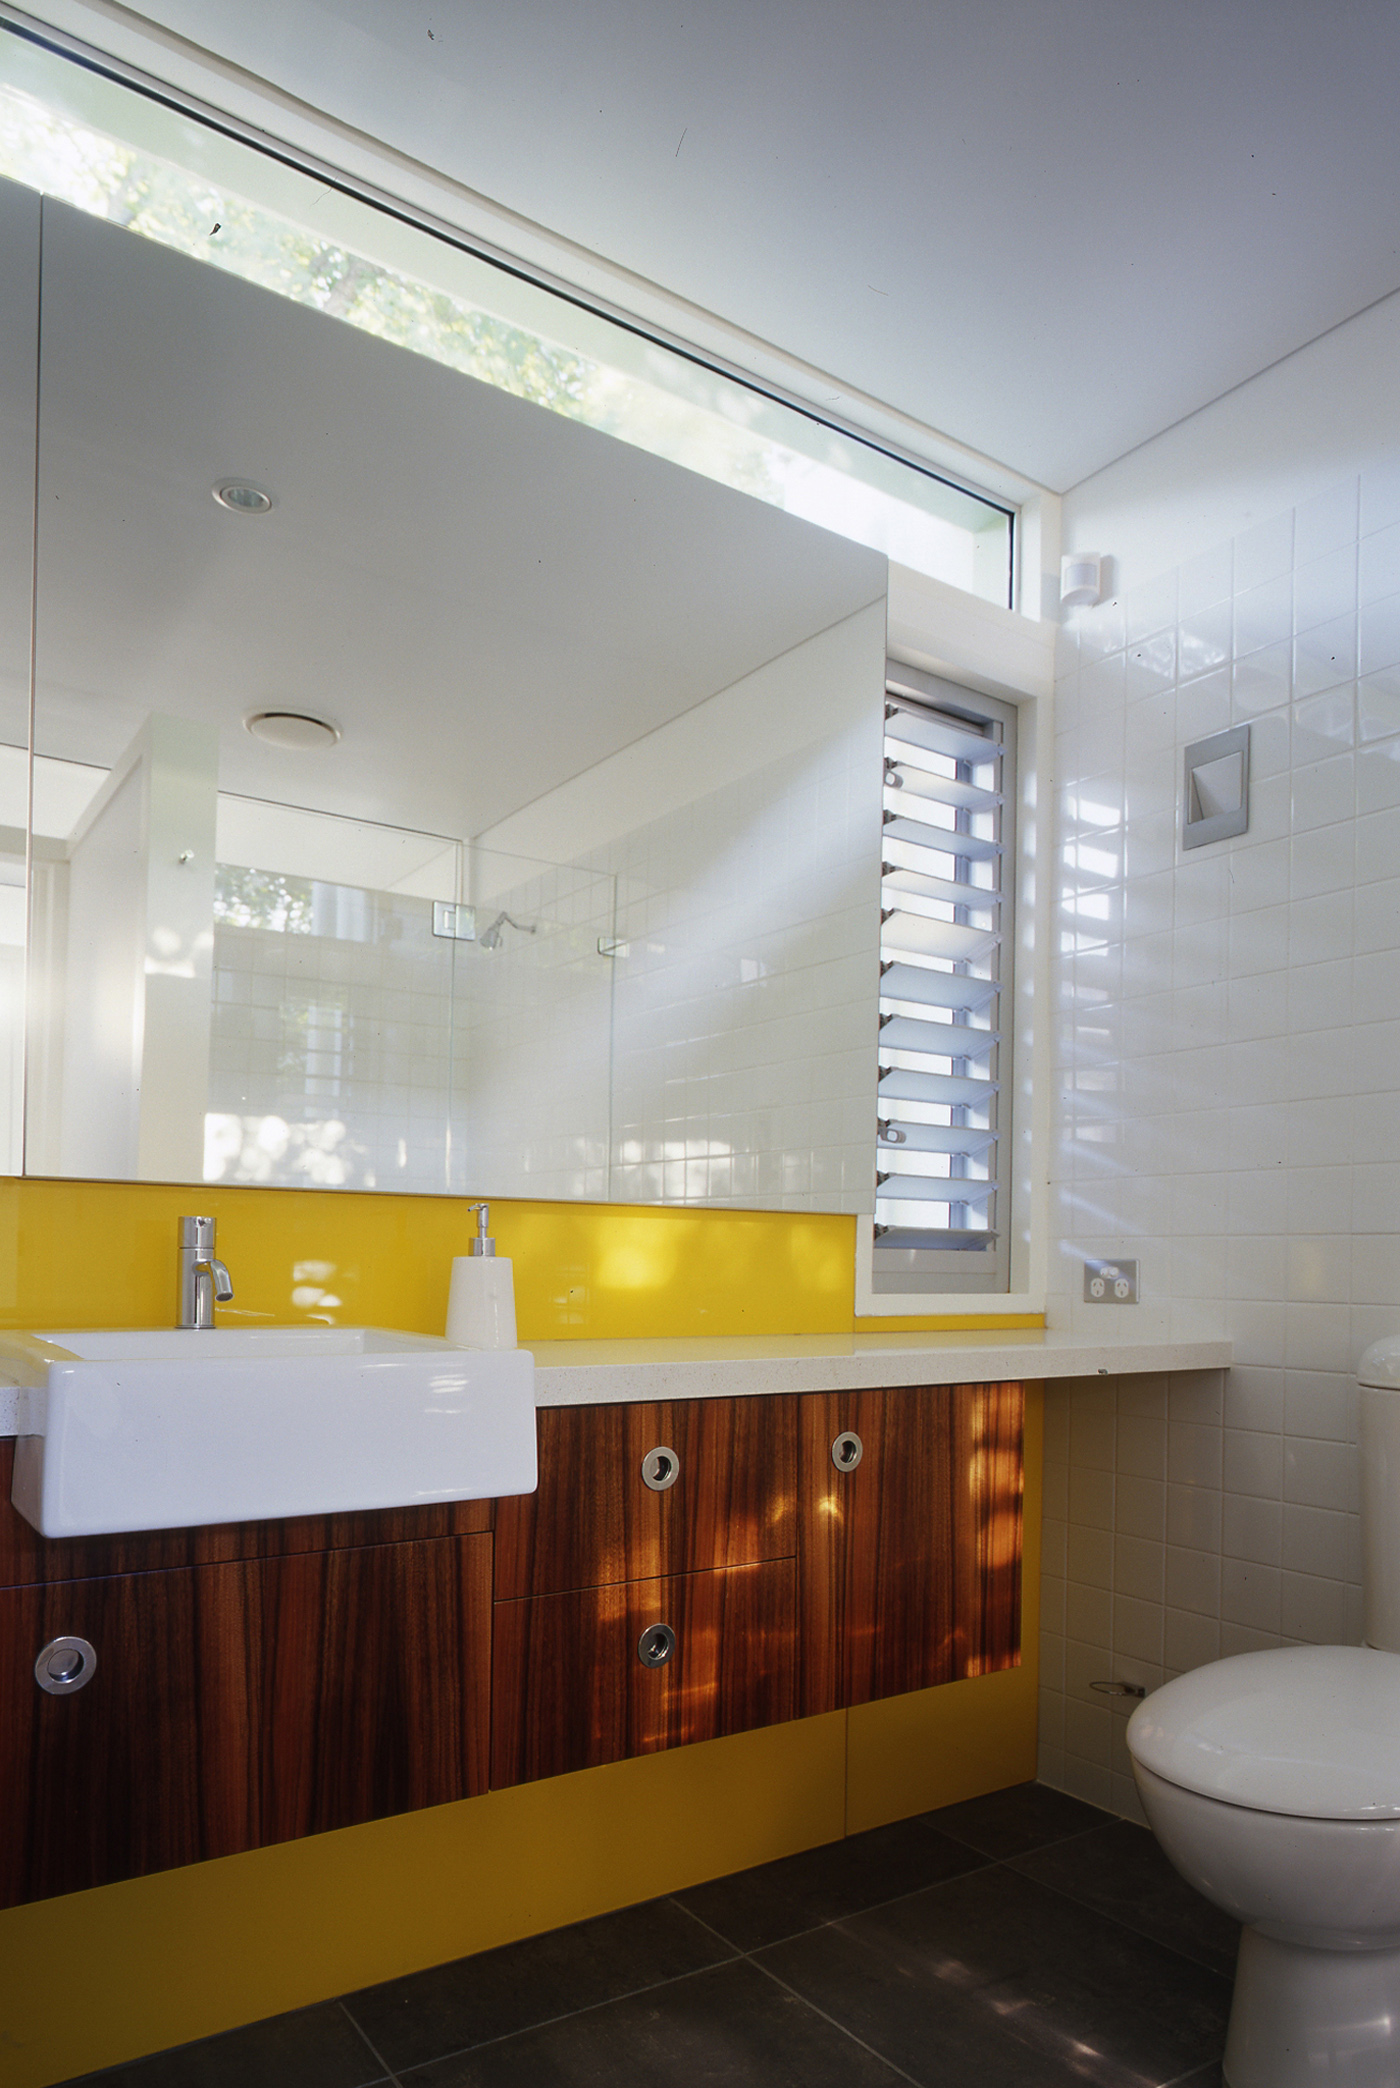 Caristo House by award winning residential architecture office Sam Crawford Architects. Light filled bathroom with yellow splash back, teak joinery and white ceramic tiles